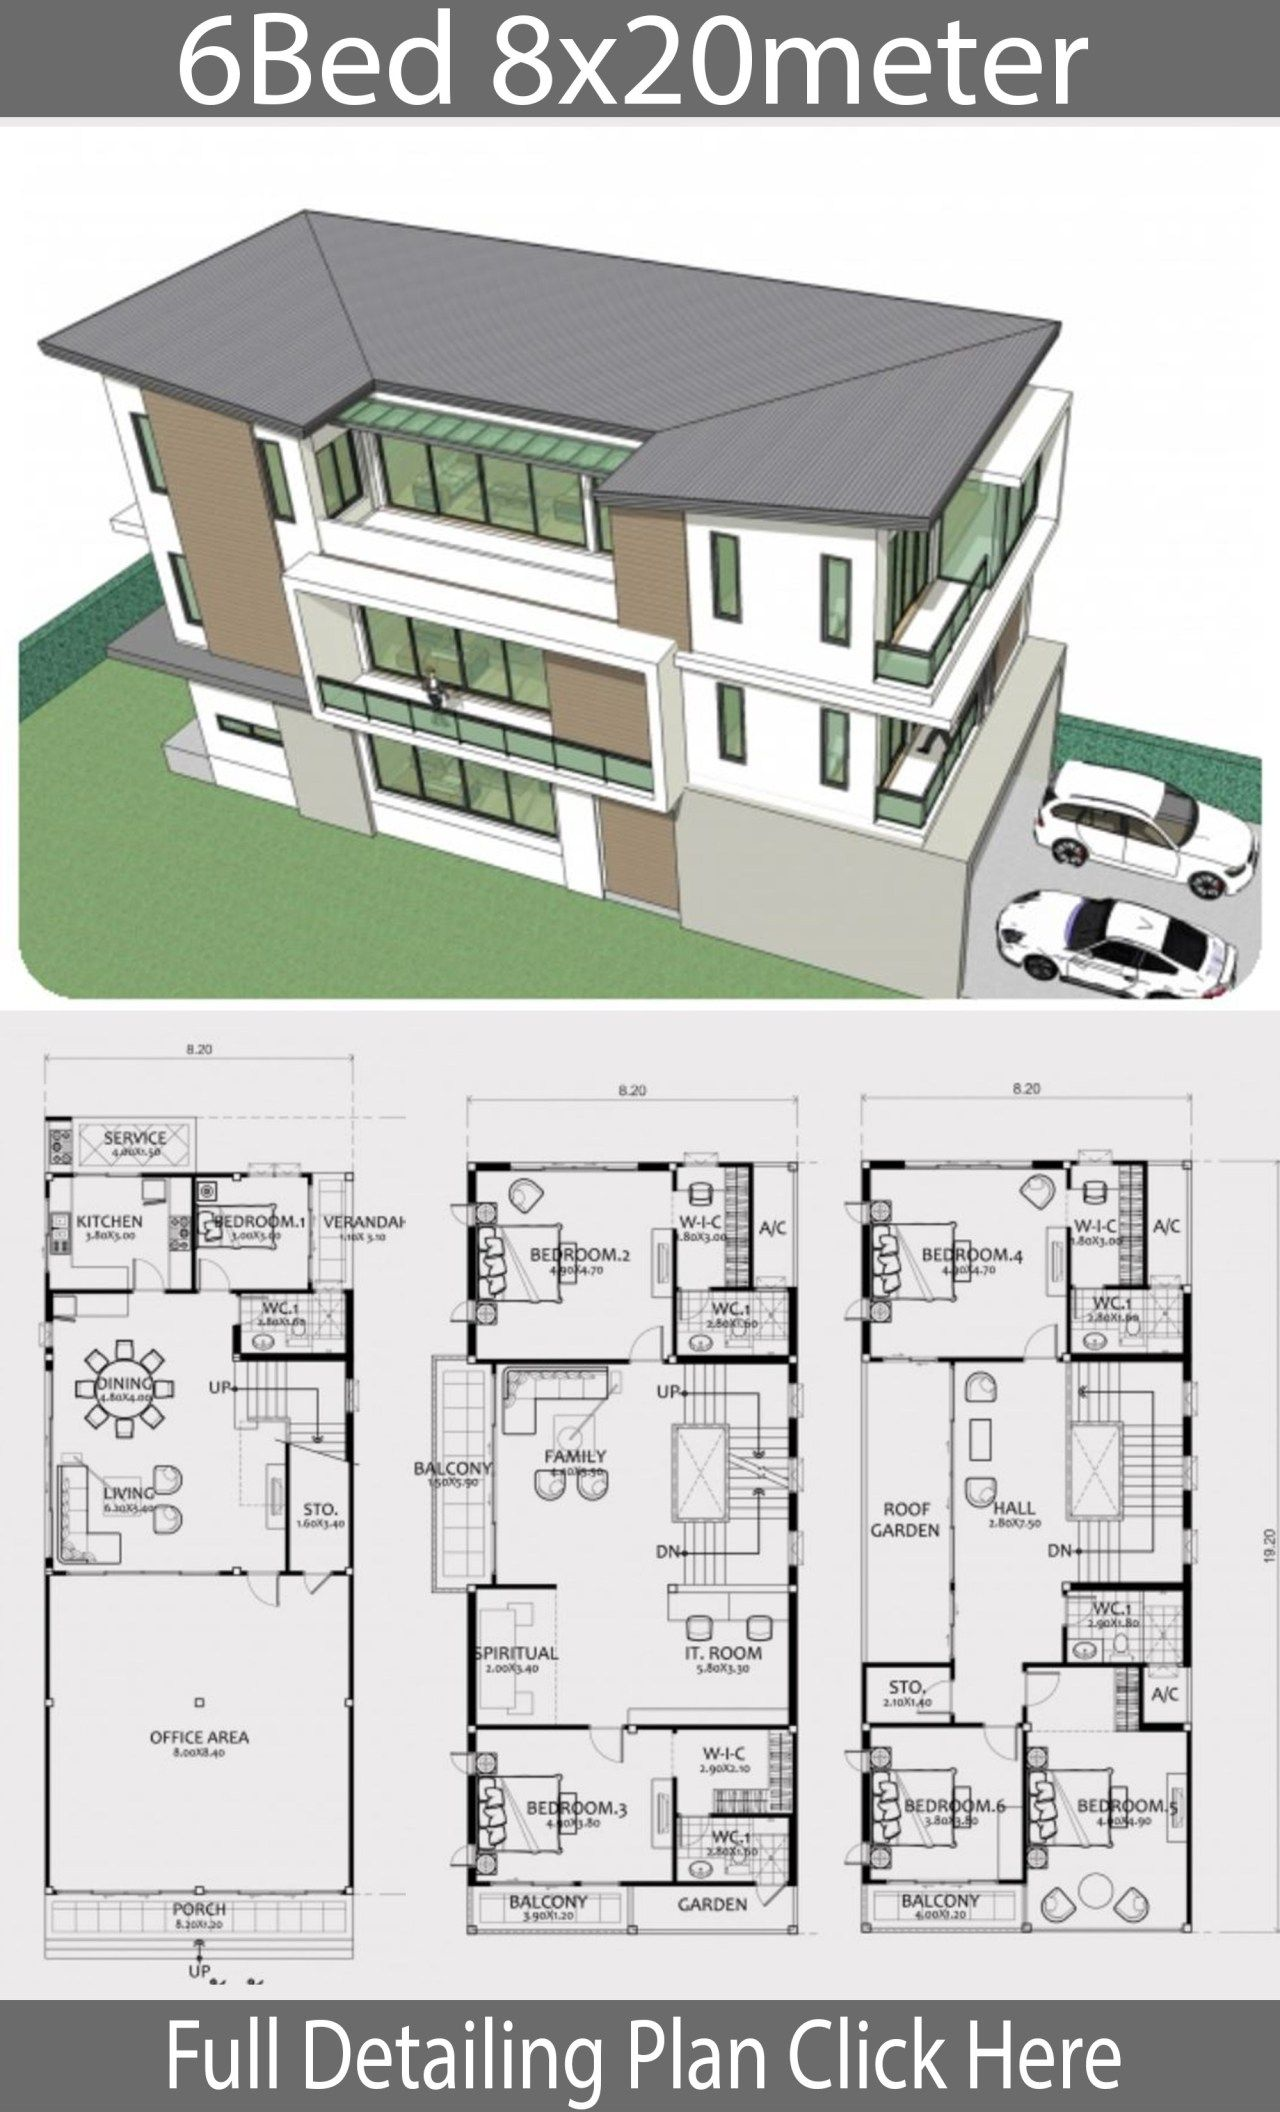 Home Design Plan 8x20m With 6 Bedrooms In 2020 House Design Modern House Plans